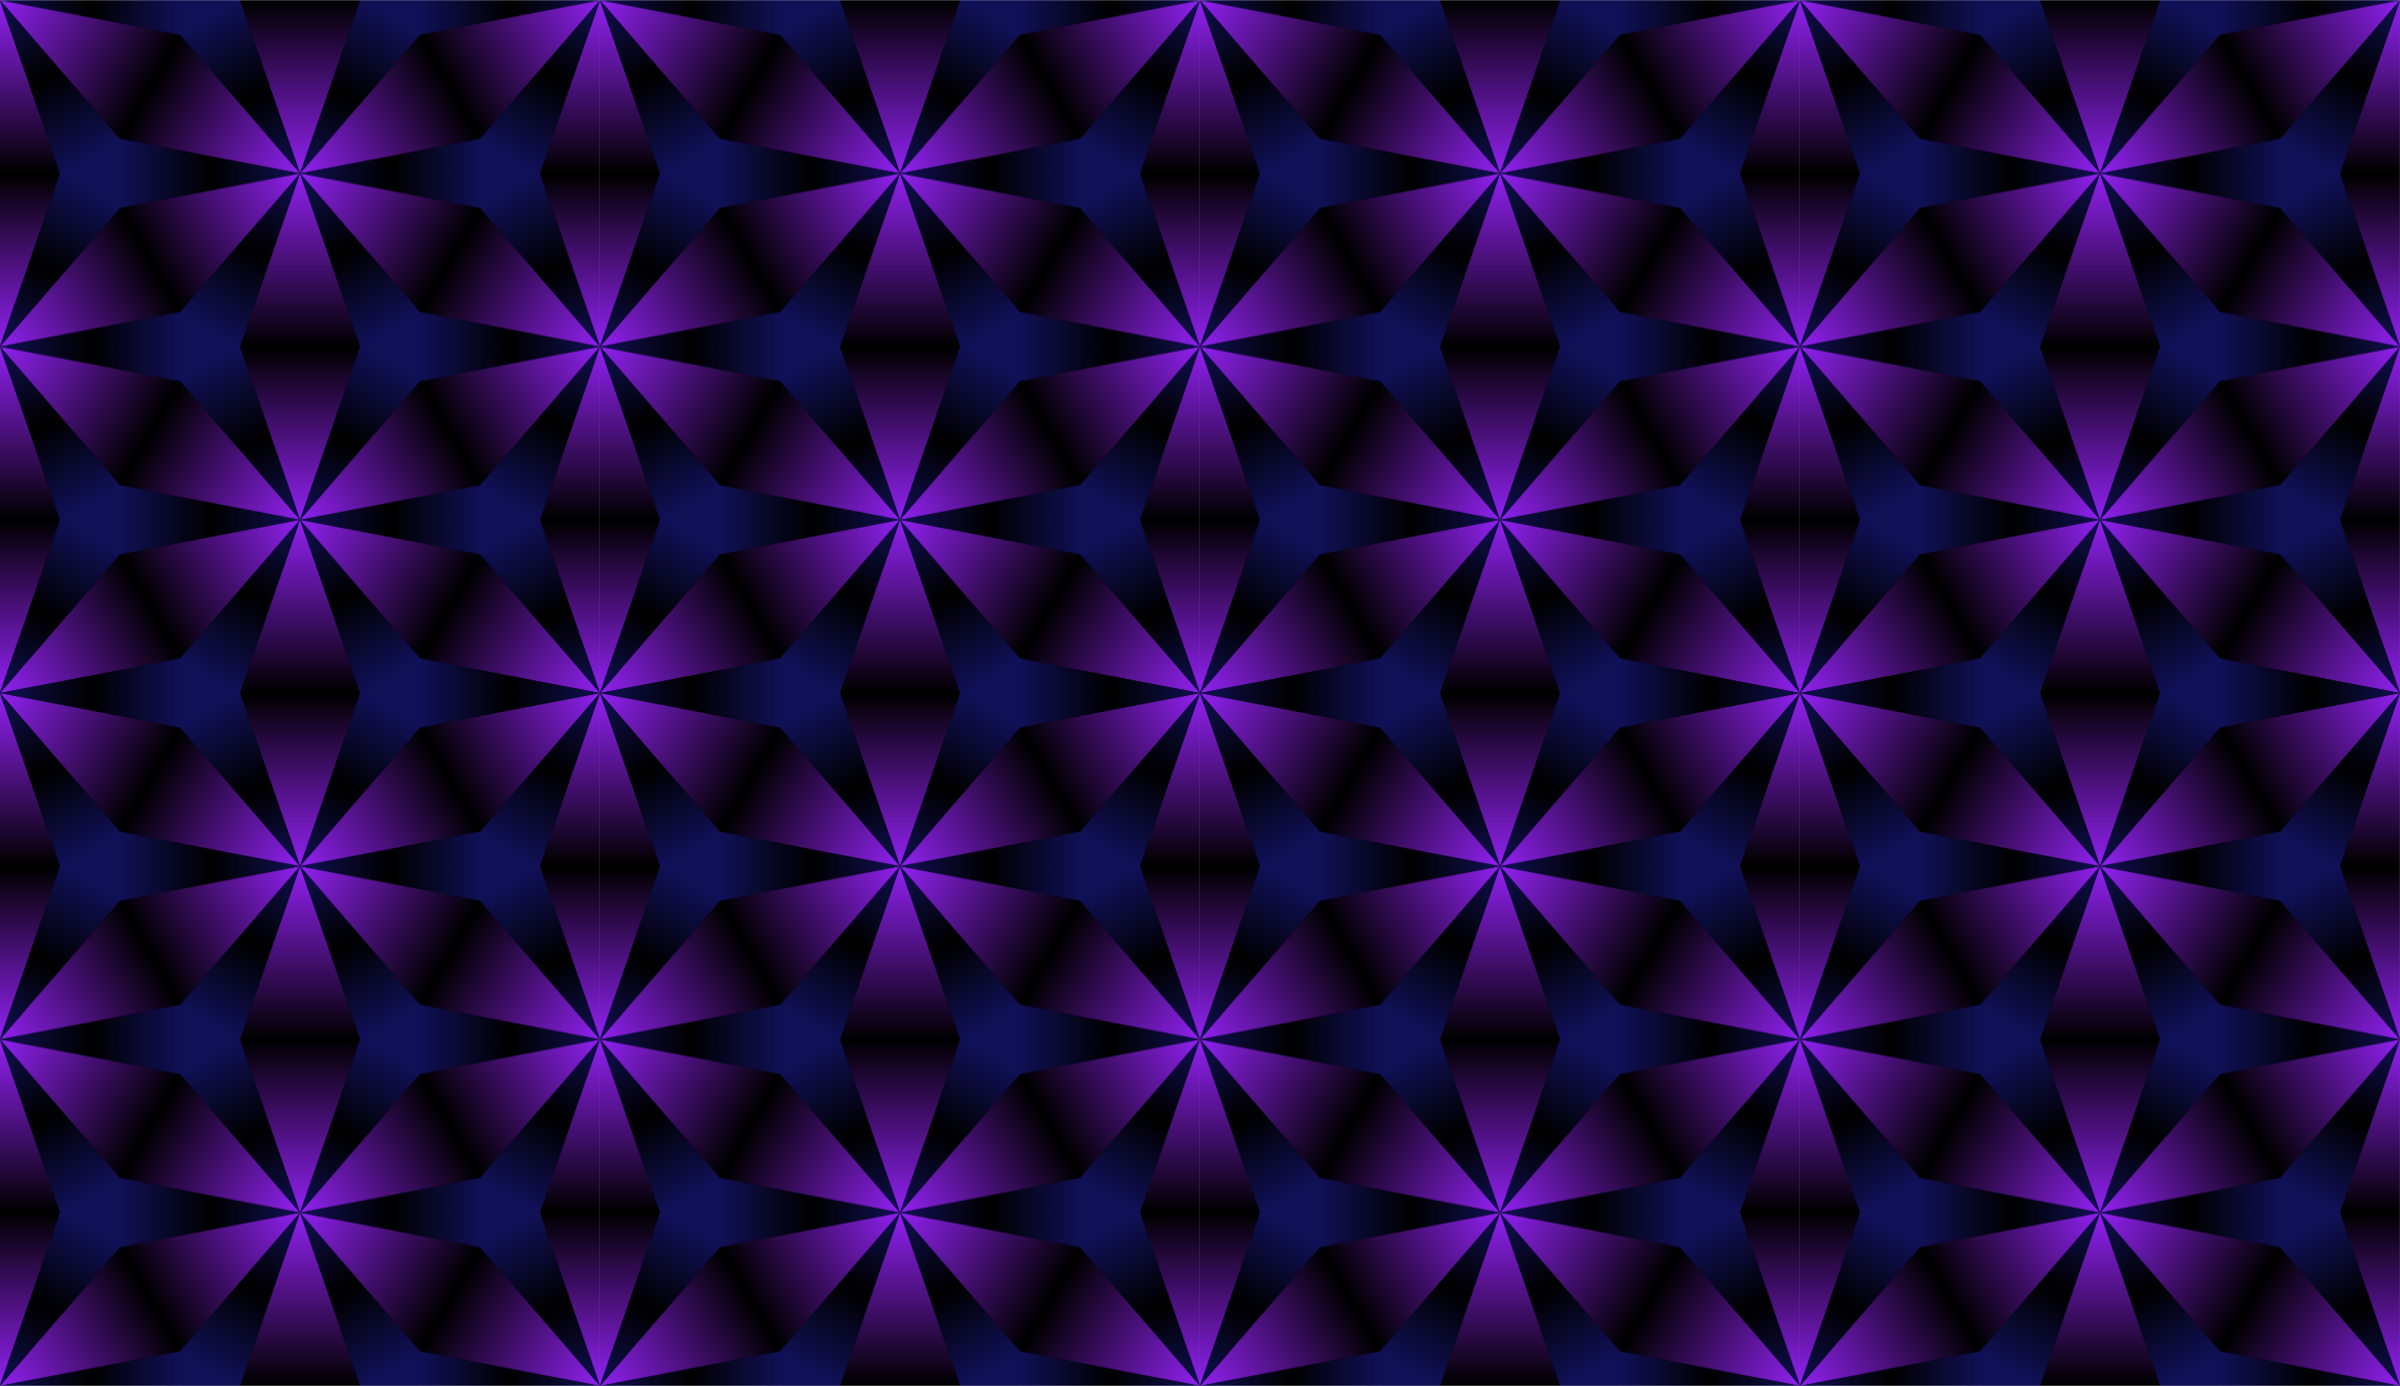 Tessellation 16 (colour 6) by Firkin